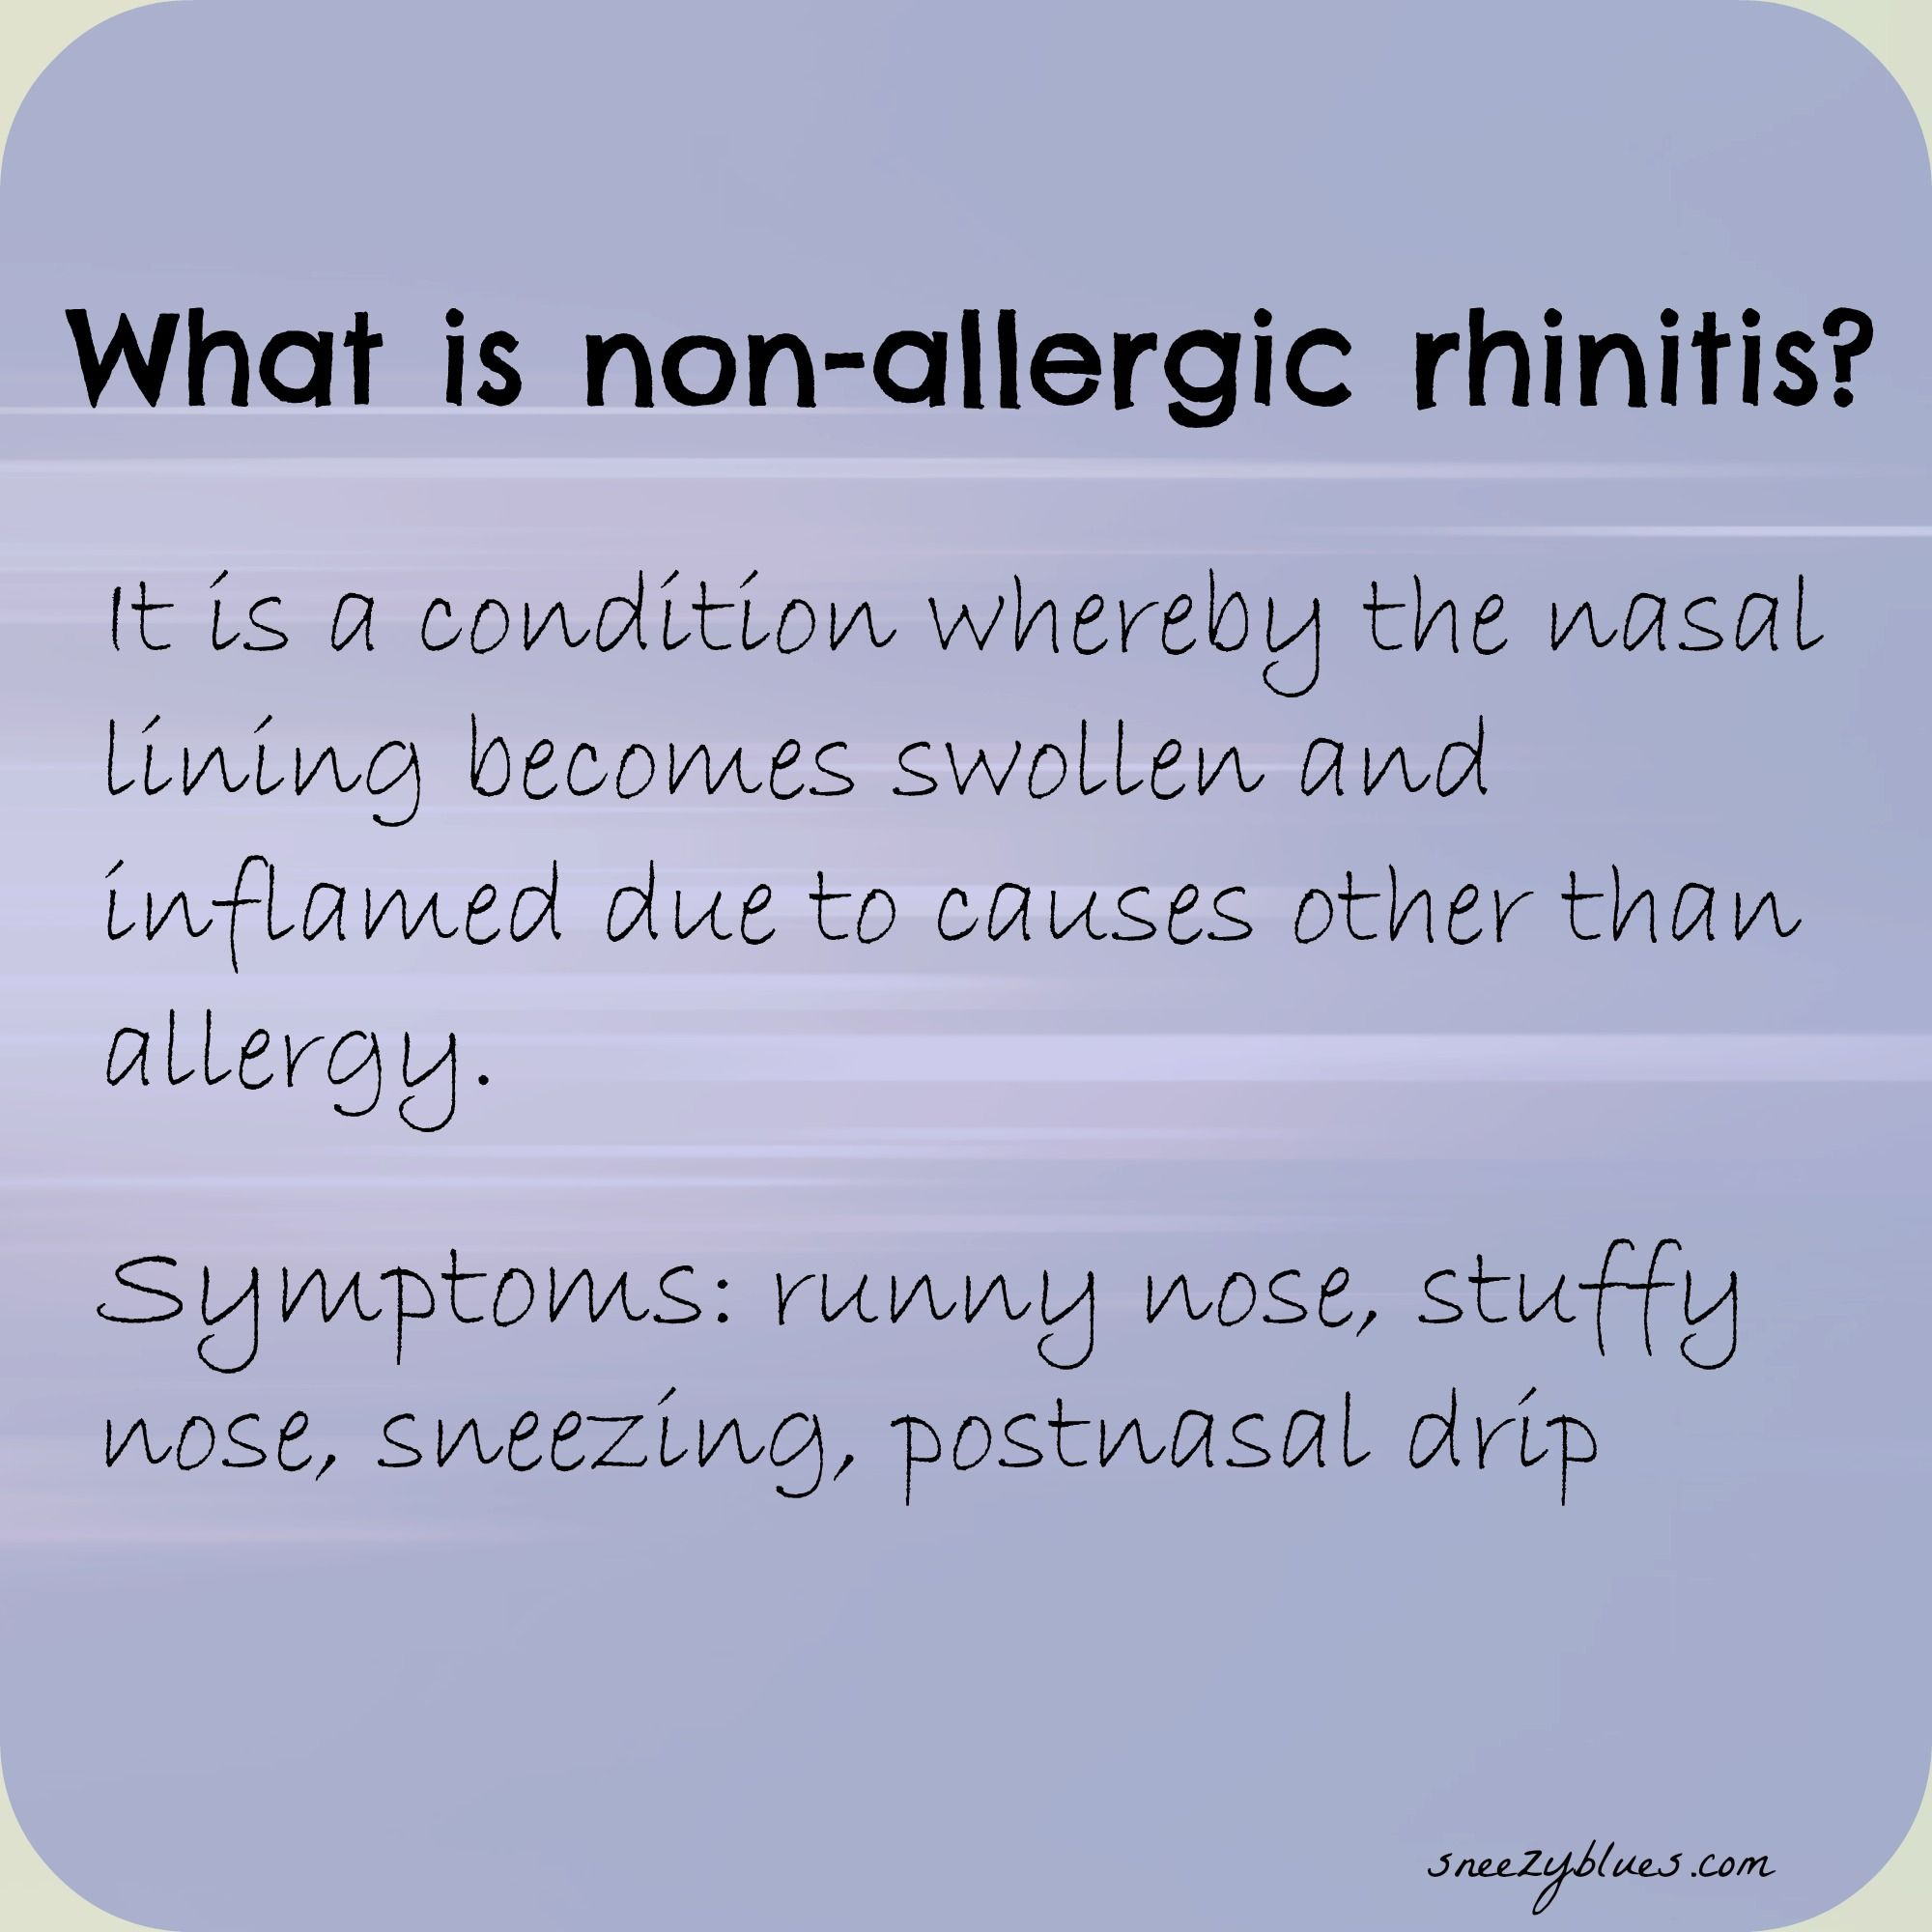 what is non-allergic rhinitis | books | pinterest | allergic